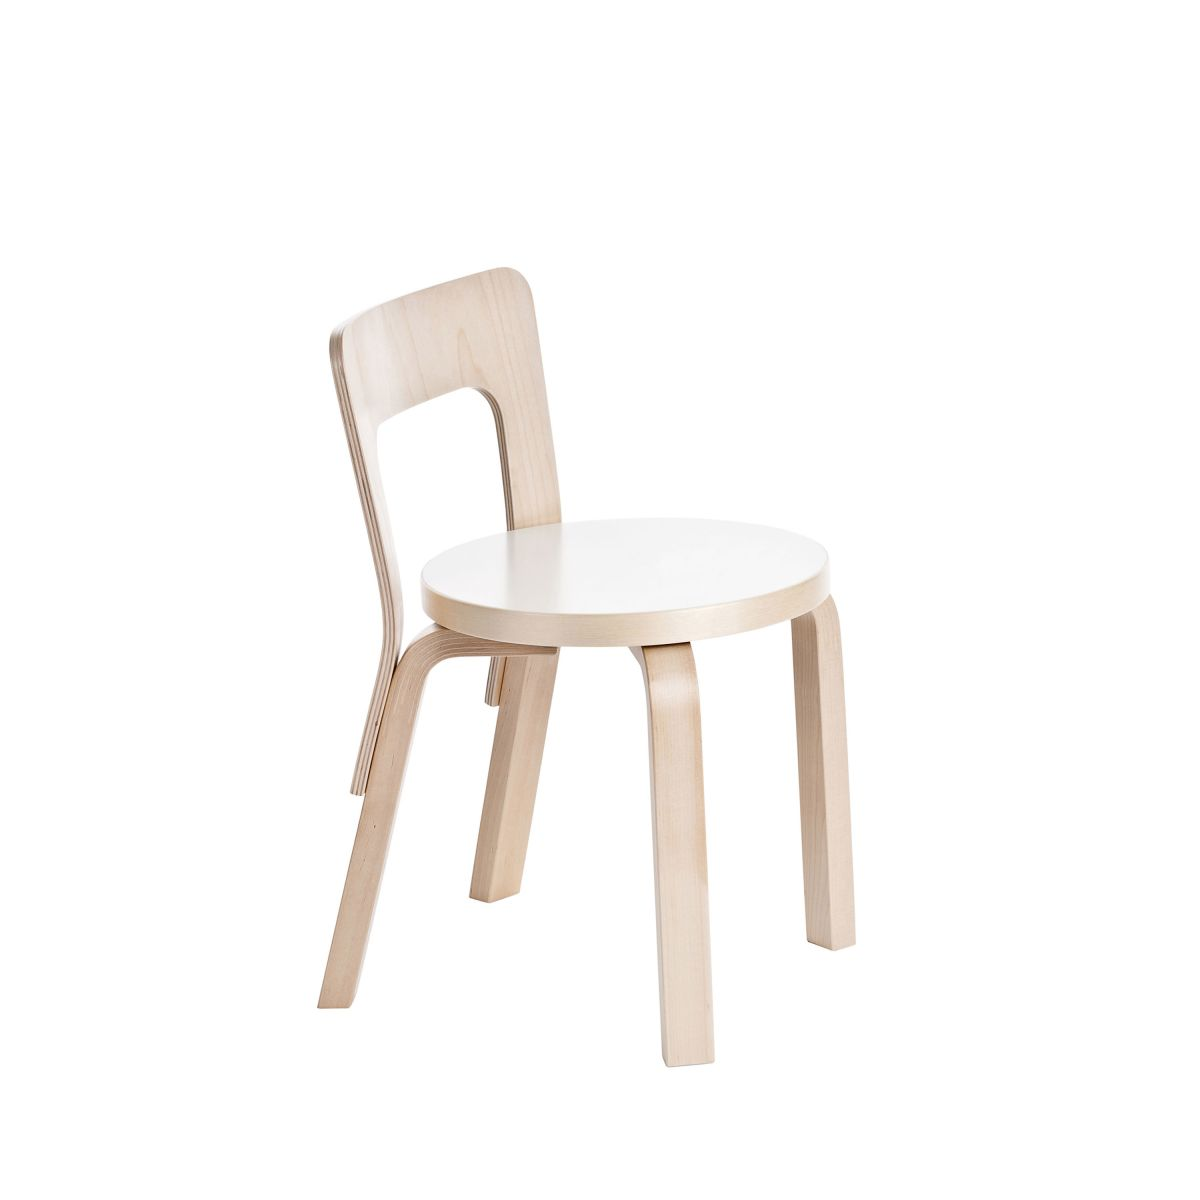 Children's Chair N65 white laminate_WEB